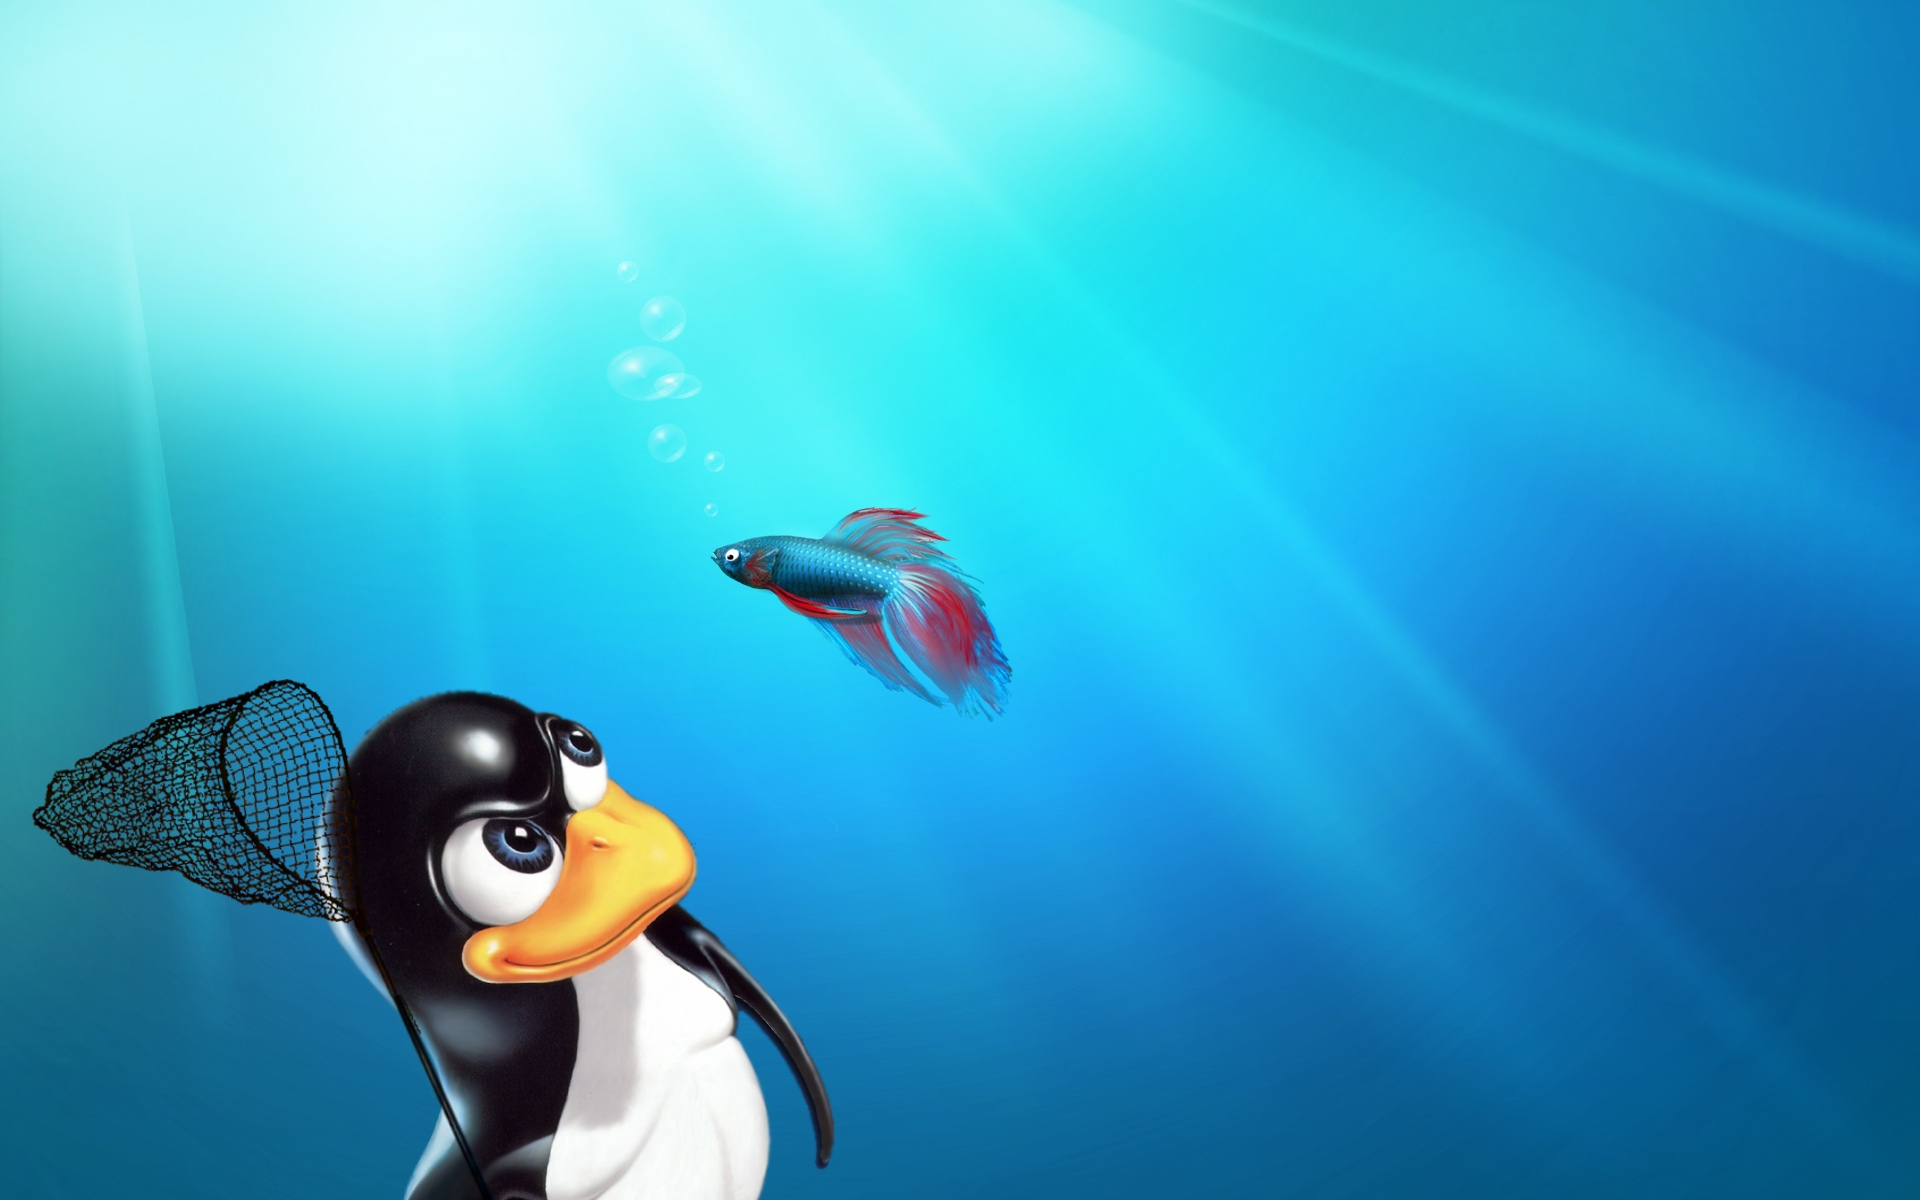 Linux Pinguin | Free Desktop Wallpapers for Widescreen, HD and Mobile